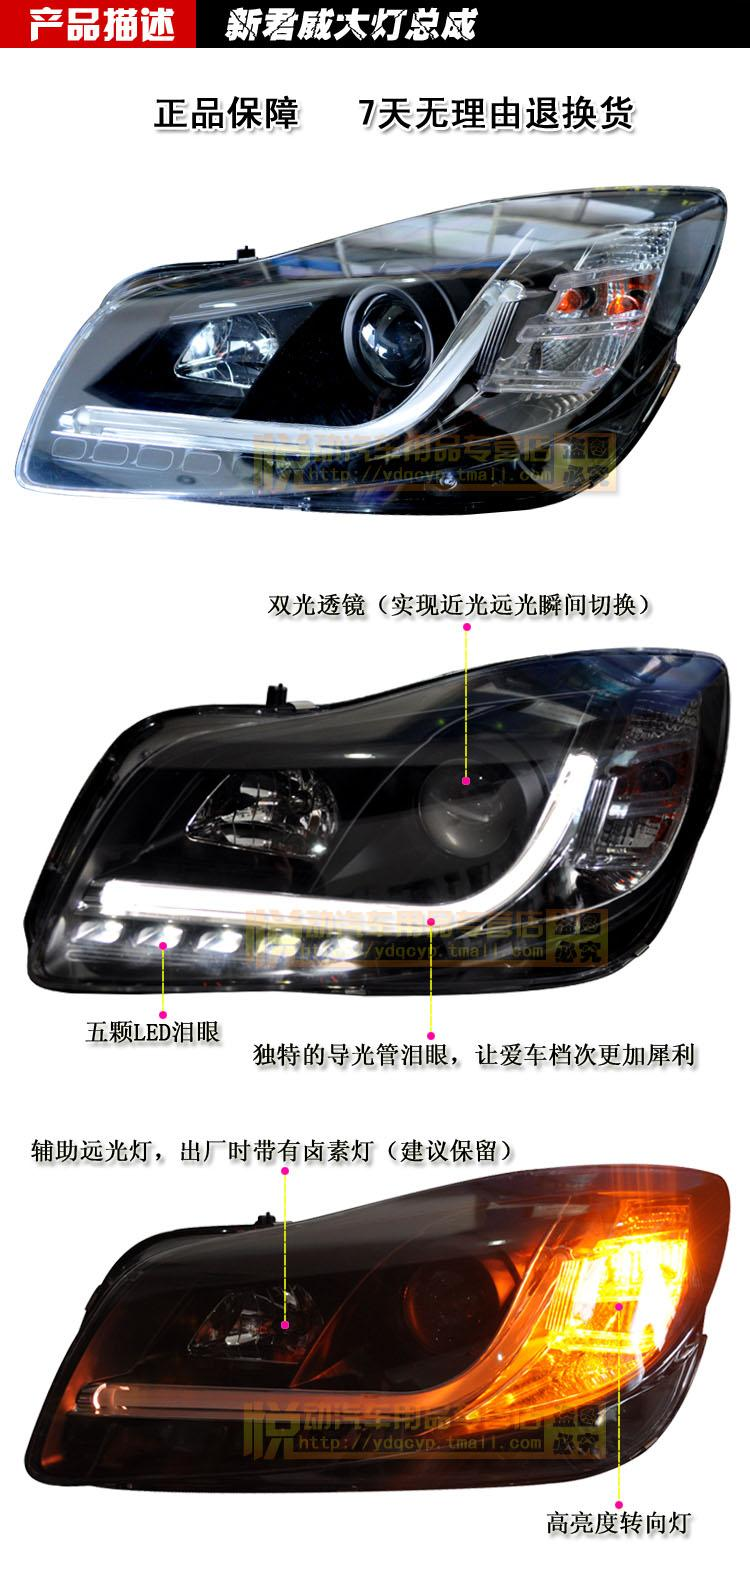 Regal Led Headlamp For Xiushan Sonar New Regal Xenon Headlamps Double Optical Lens Light Guide Assembly With Led Modified Headlamps